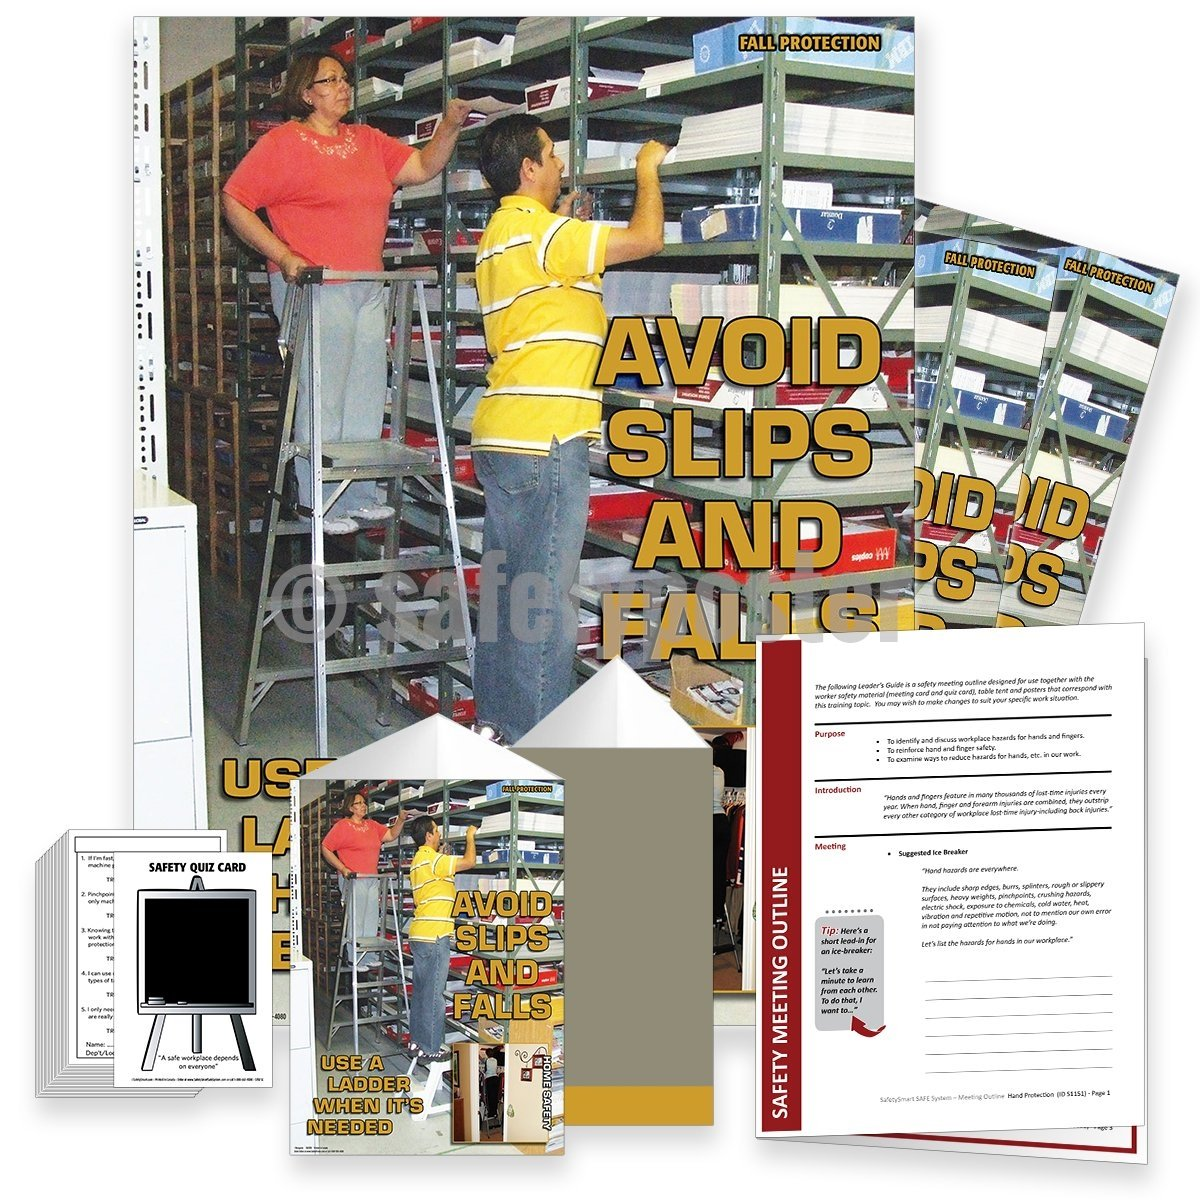 Safety Meeting Kit - Avoid Slips Trips and Falls Use A Ladder